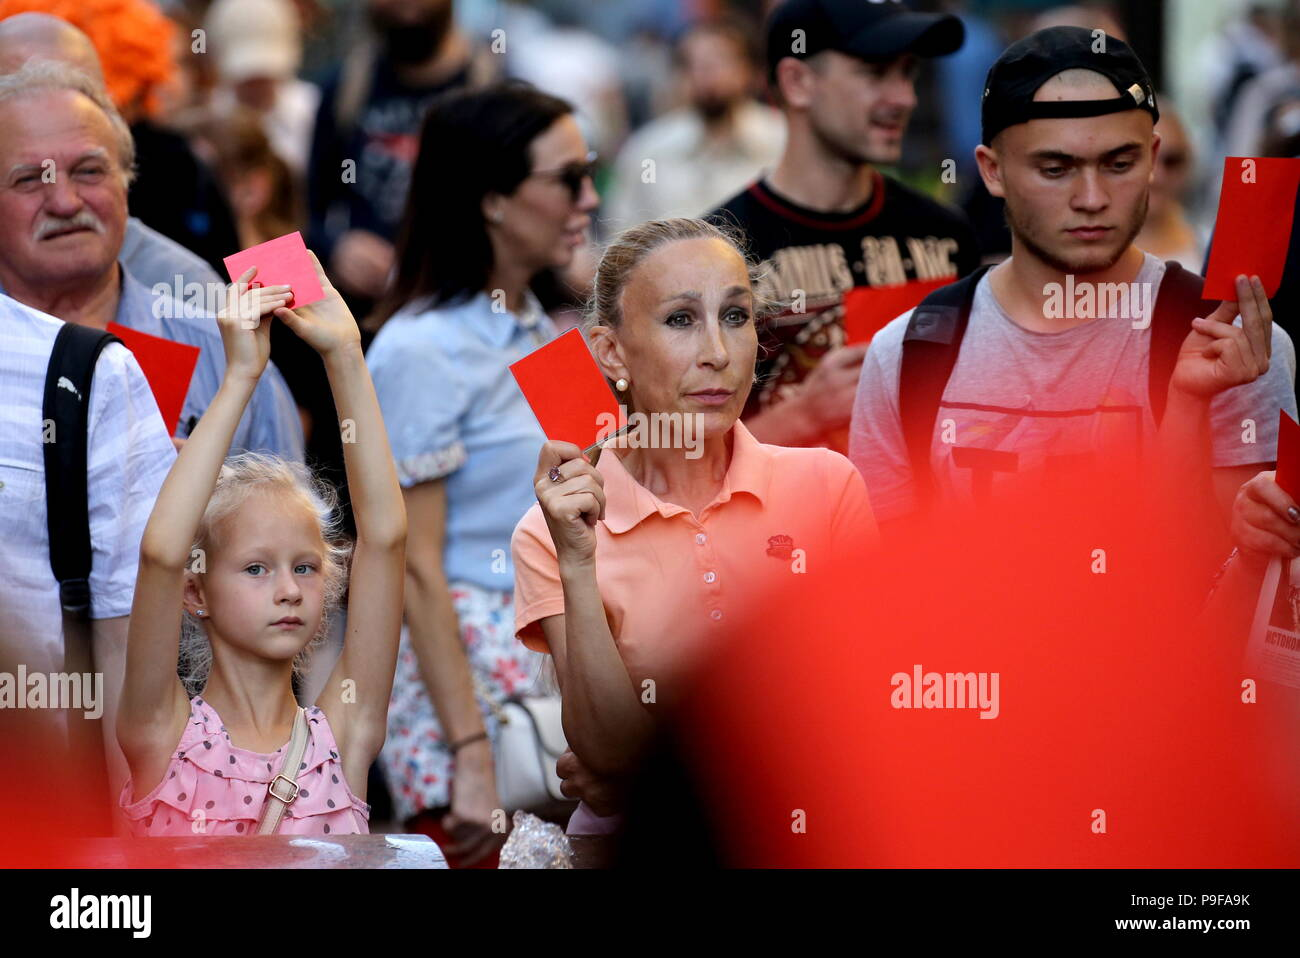 St Petersburg, Russia. 18th July, 2018. ST PETERSBURG, RUSSIA - JULY 18, 2018: People take part in St Petersburg's Malaya Sadovaya Street rally against a Russian government proposal to raise the retirement age from 60 to 65 for men, and from 55 to 63 for women within the next two decades. Peter Kovalev/TASS Credit: ITAR-TASS News Agency/Alamy Live News - Stock Image